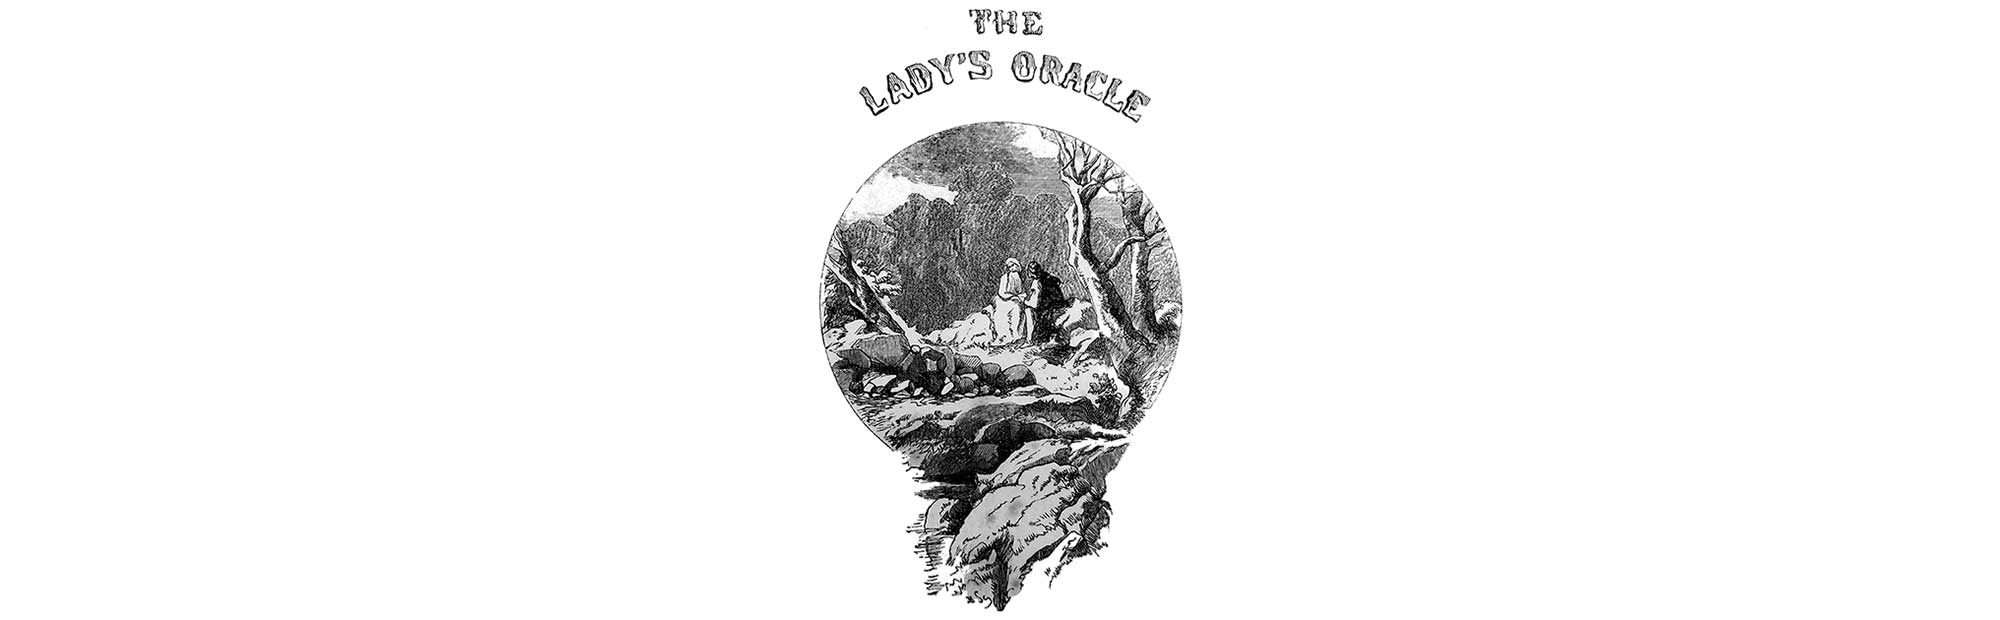 Consult The Lady's Oracle, 1855